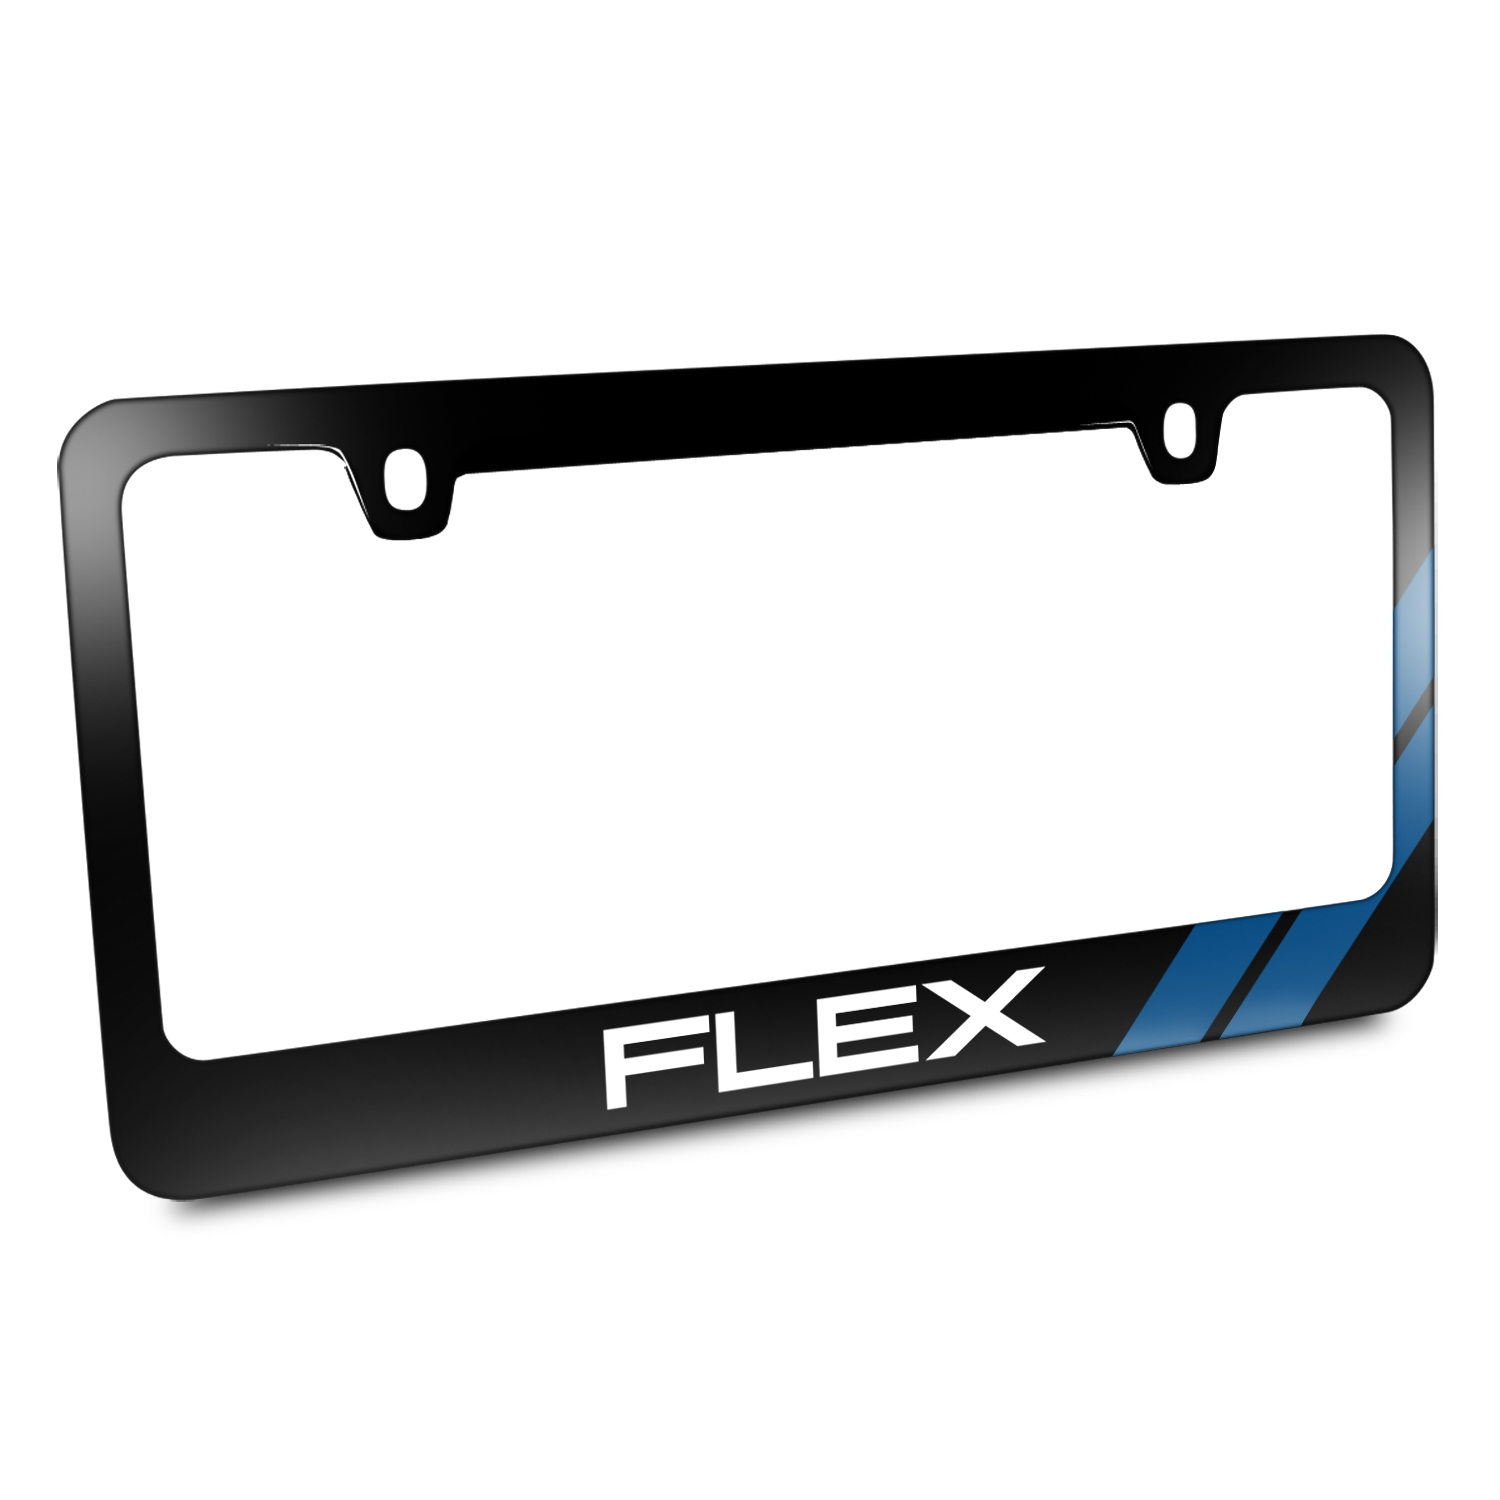 Ford Flex Blue Sports Stripe Black Metal License Plate Frame